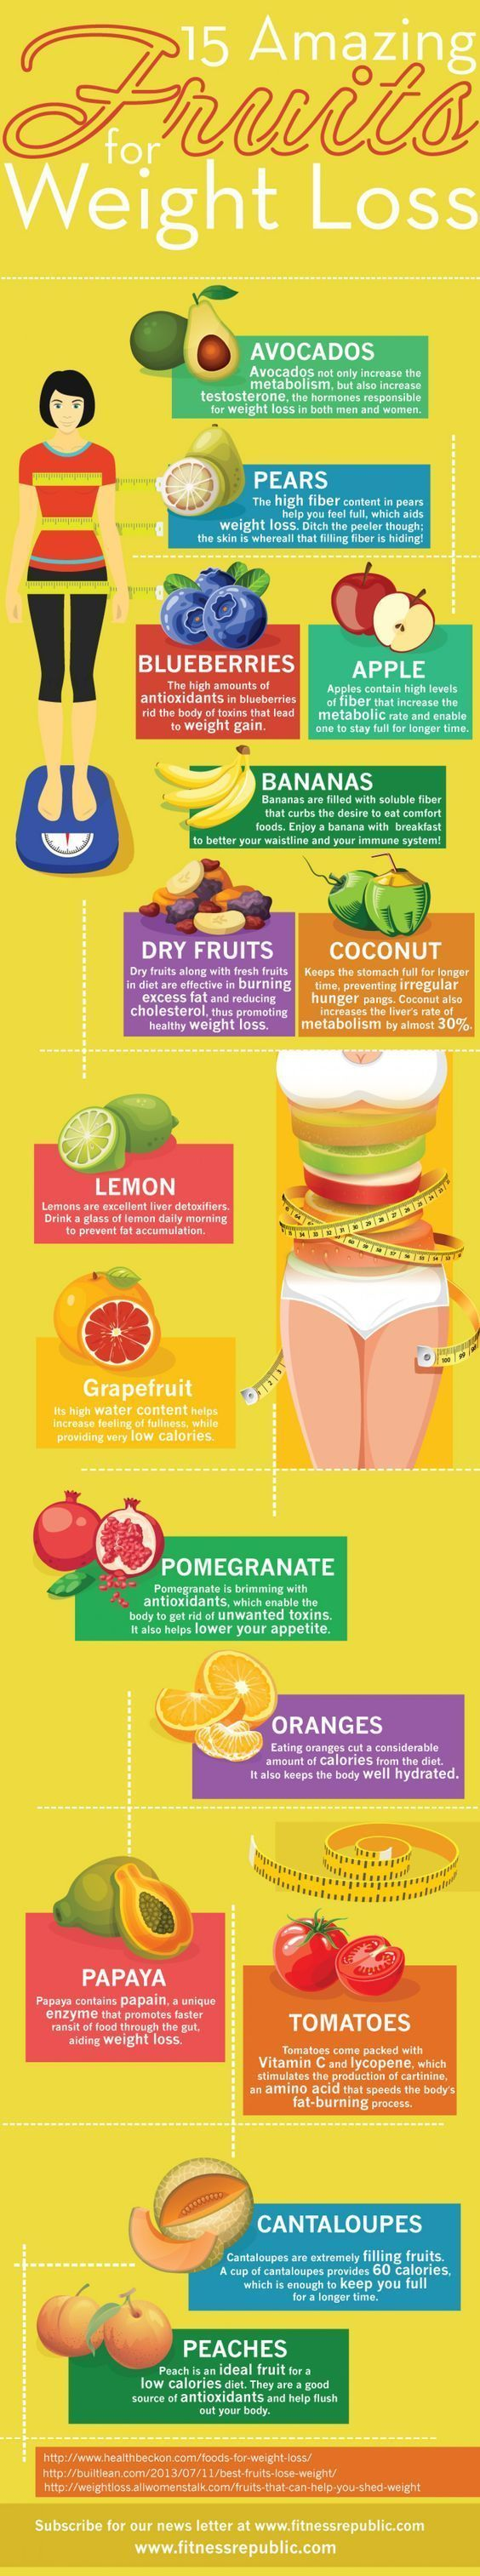 These 8 Fat Burning Foods are AMAZING! I'm so happy I found these! I've tried a few and I've ALREADY lost a weight! That detox drinks has ESPECIALLY worked it's magic! Definitely pinning for later!